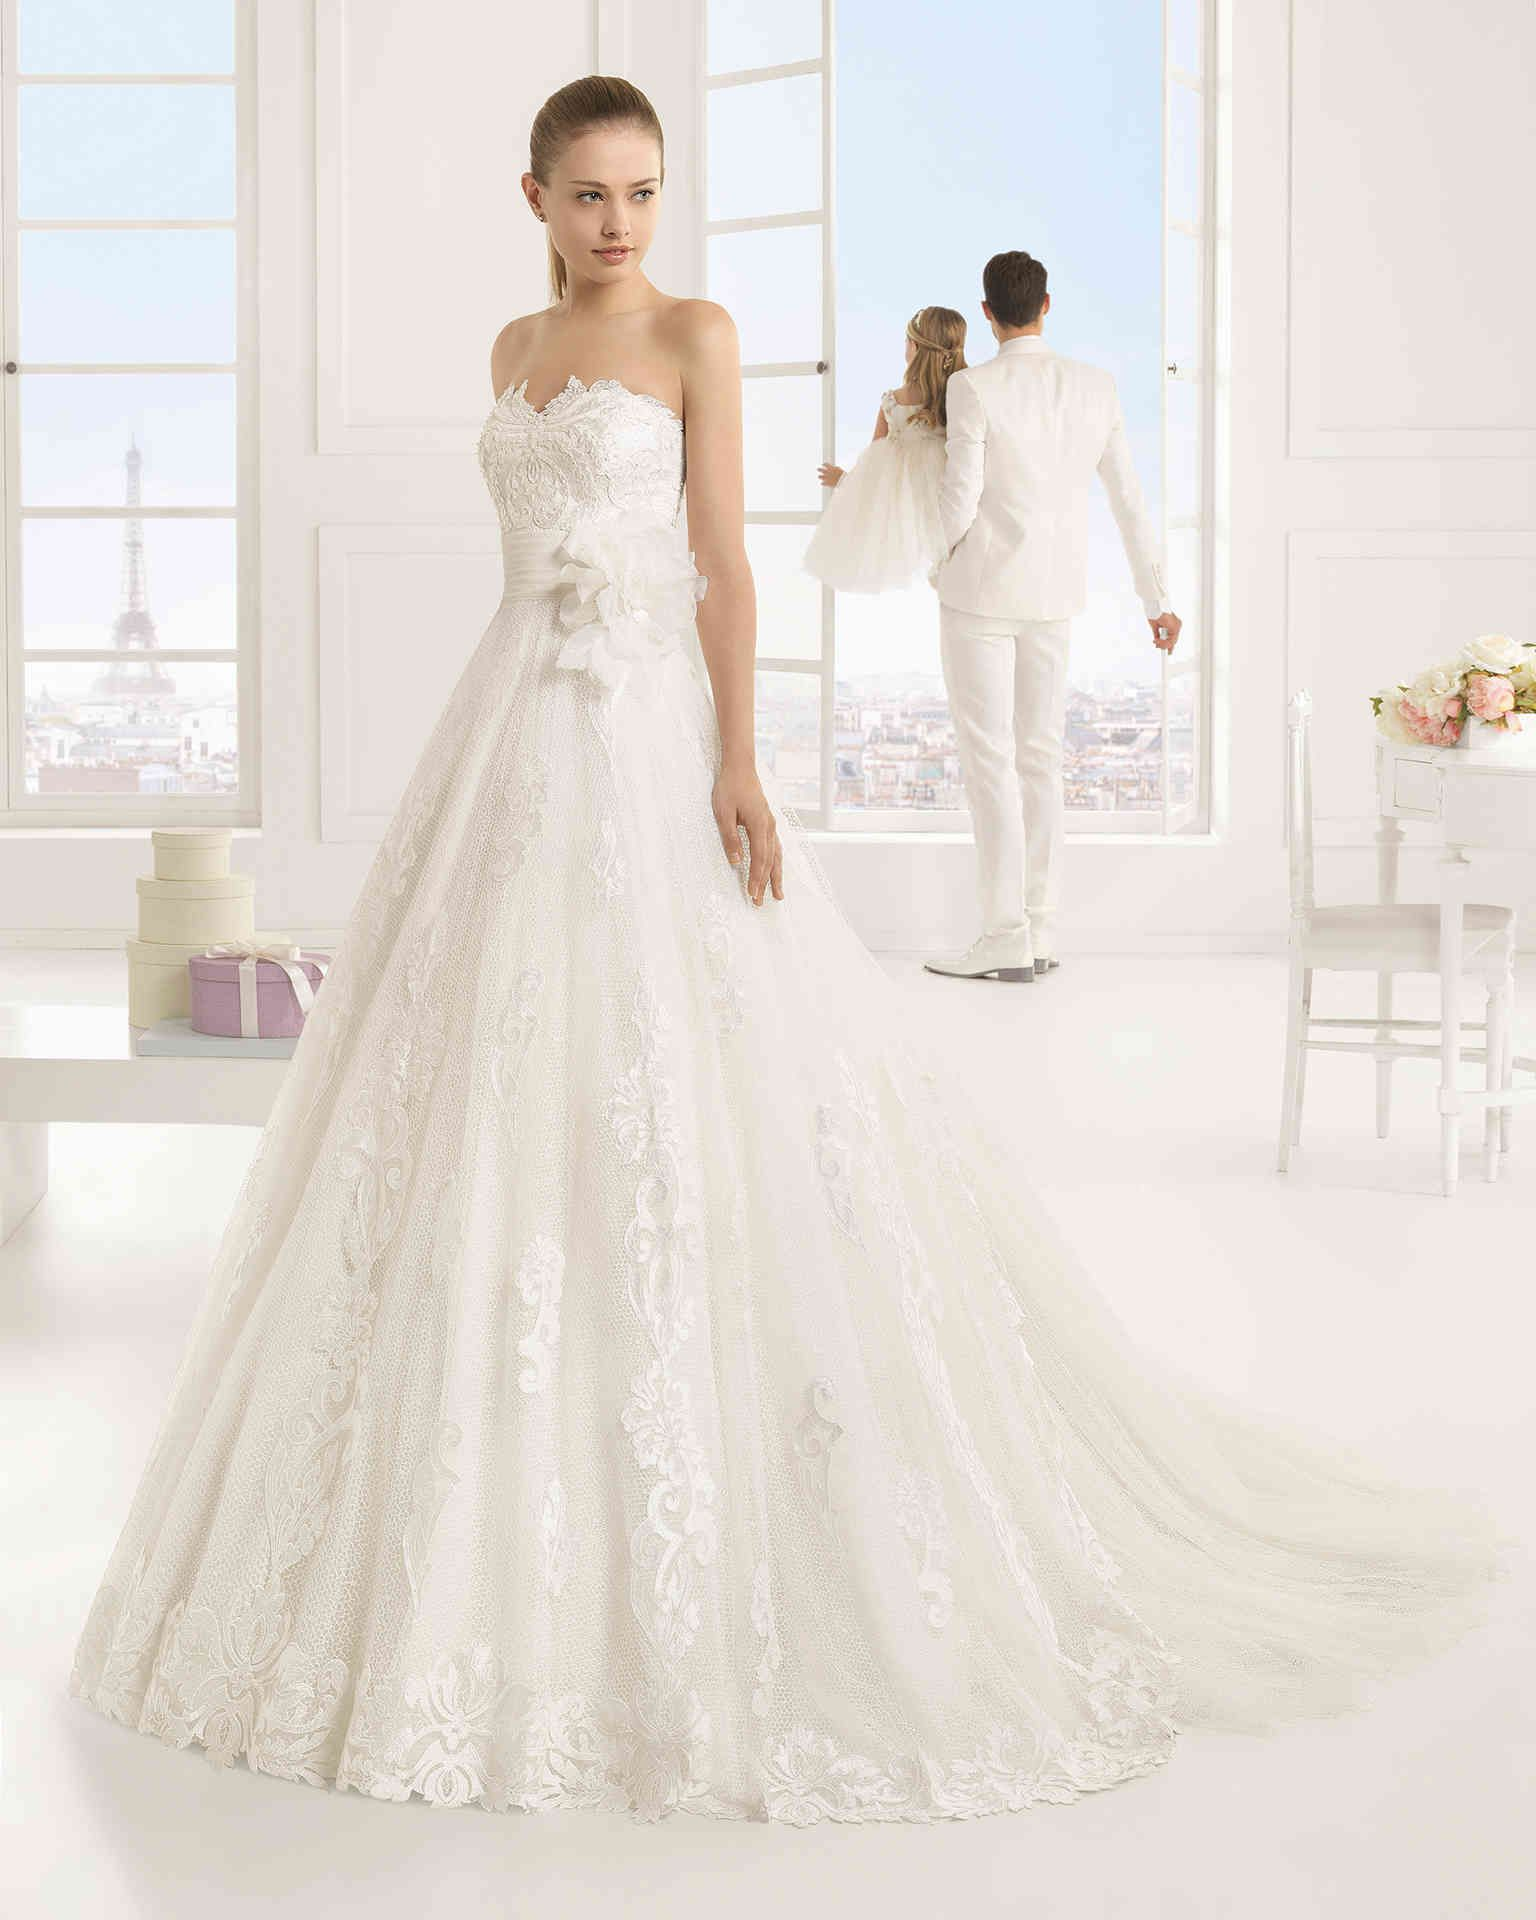 Ecru wedding dress  Our collections are wide enough to be able to send the best